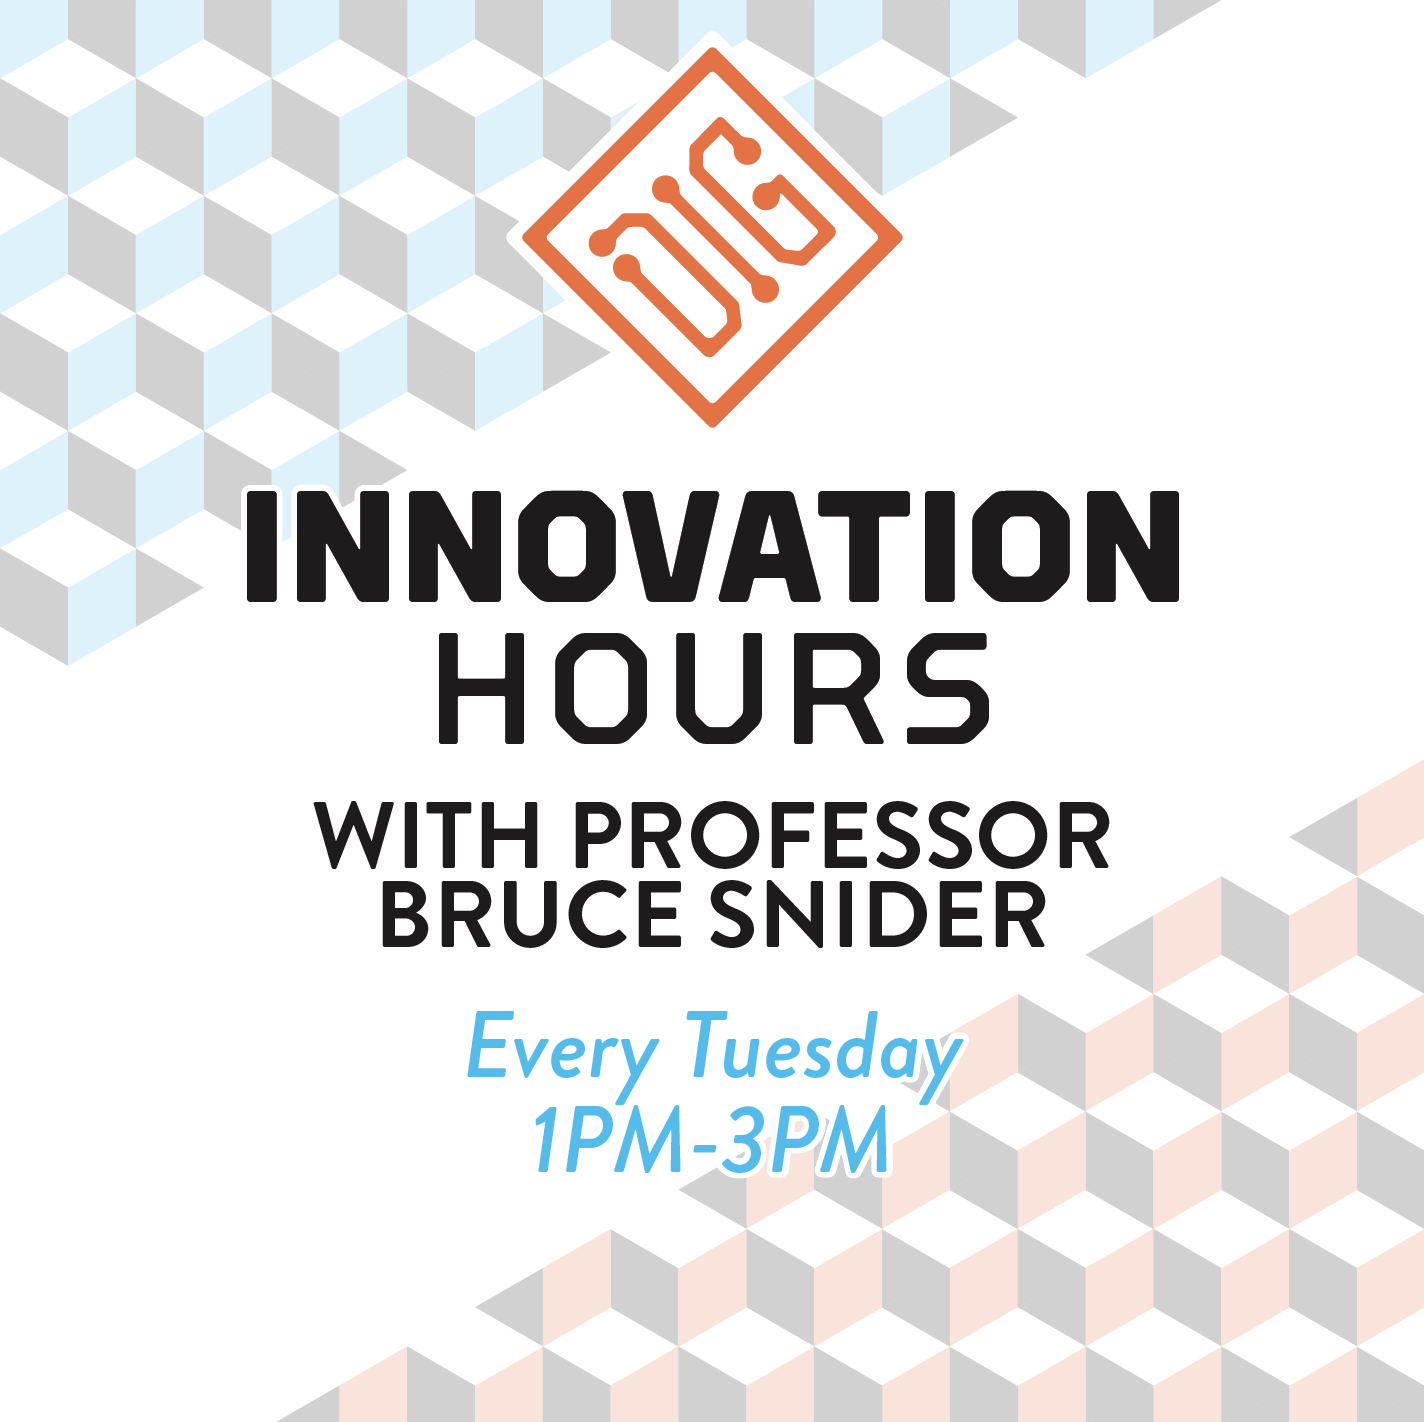 Innovation Hours sq.png